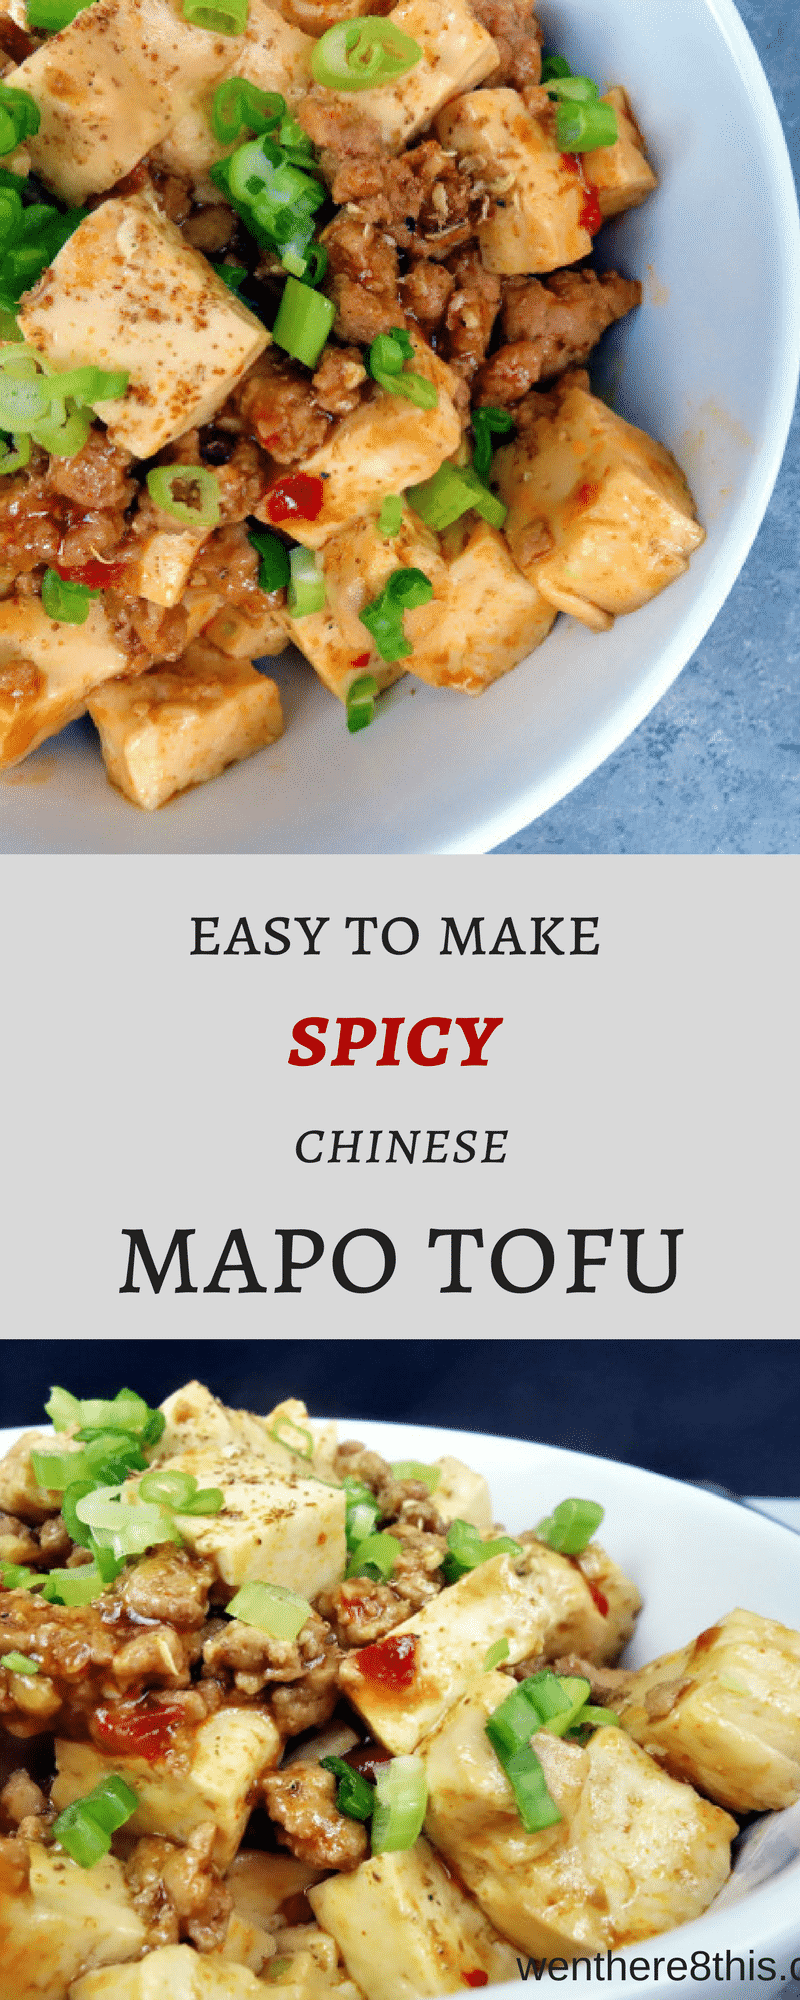 This easy to make spicy Chinese Mapo Tofu is packed full of delicious umami flavor! Cubed tofu in a thick, spicy umami sauce with ground pork...YUM. mapo tofu recipe, chinese mapo tofu easy, tofu recipe, tofu and pork recipe, Sichuan recipes, pf changs, Chinese recipes, spicy mapo tofu, spicy Chinese recipe, easy Chinese recipes, mapo tofu easy